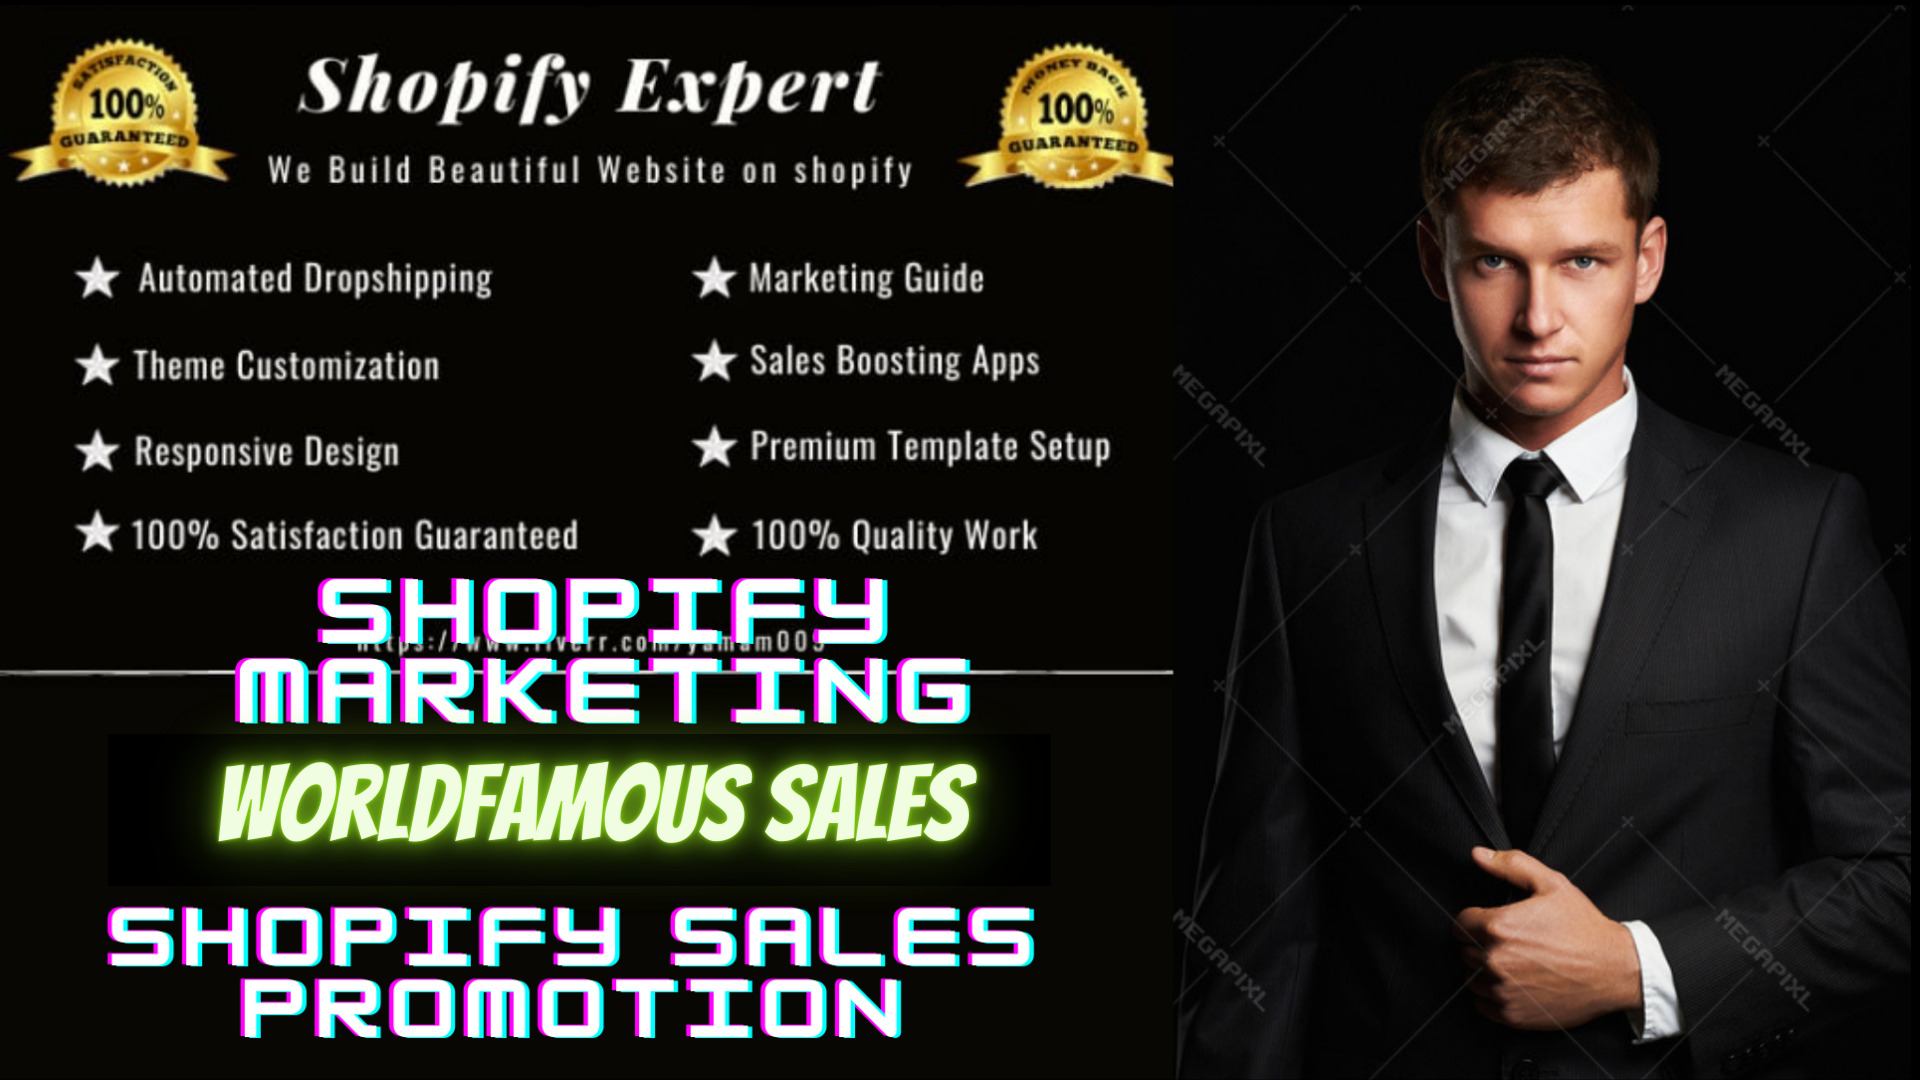 I will do shopify marketing promotion and traffic klaviyo email flows fb, FiverrBox